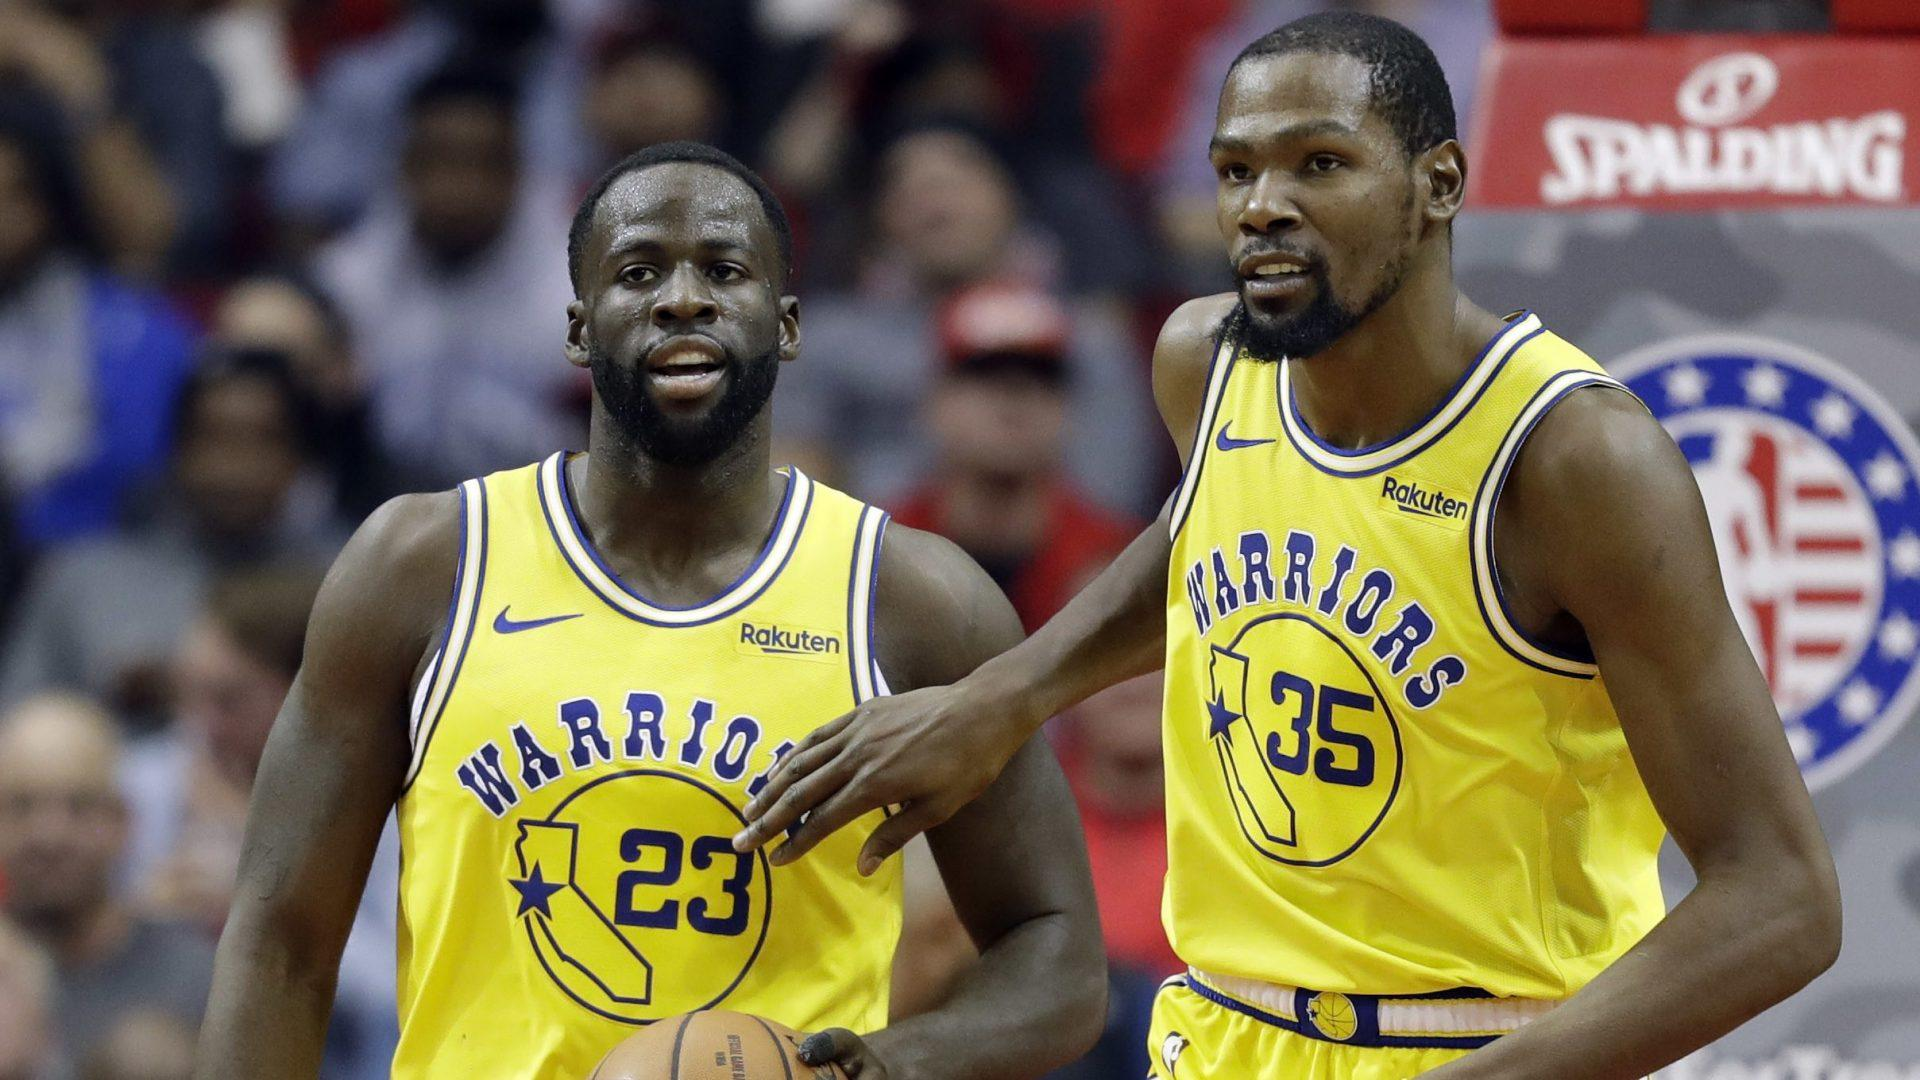 """Draymond Green on Kevin Durant: """"If he go, he go. If he stay, he stay,"""" focus is on title"""